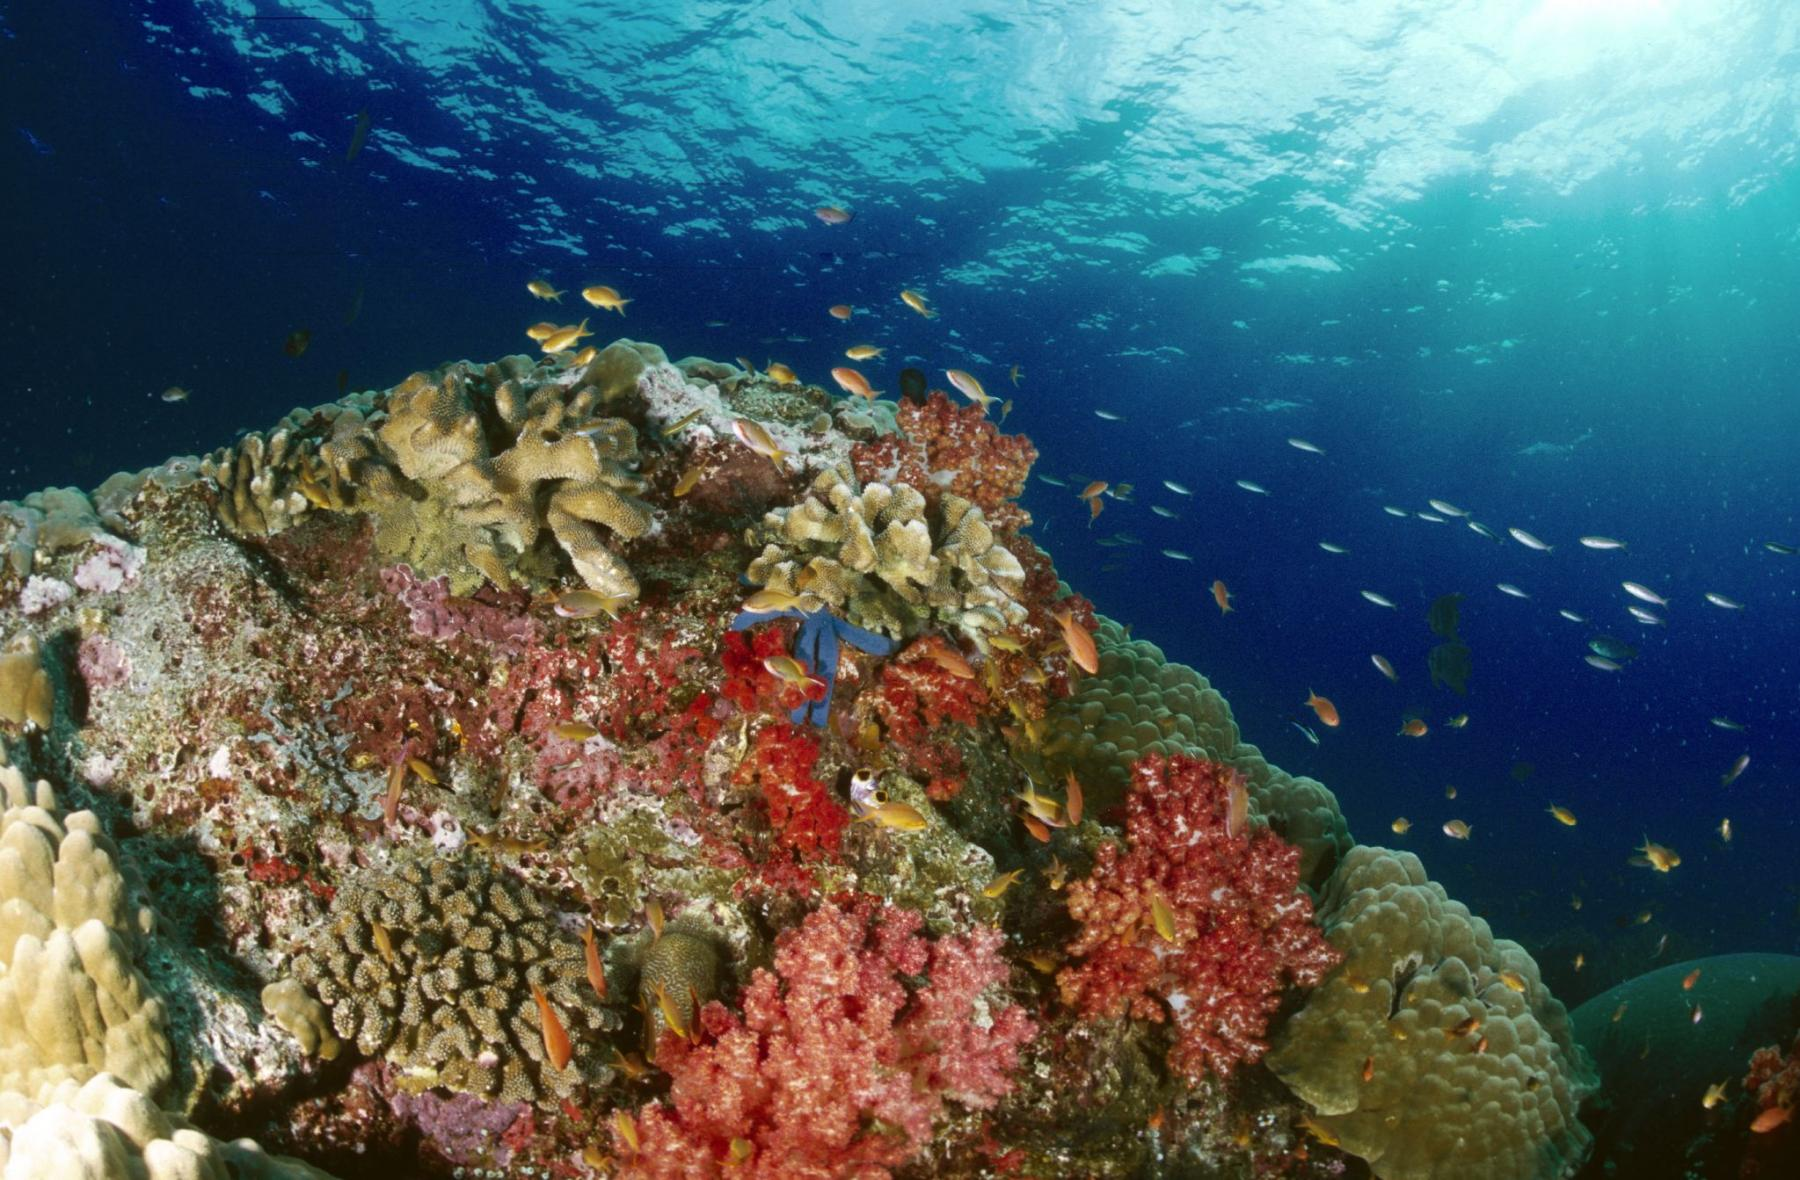 Let's Discover the World's Greatest Marine Ecosystem - Raja Ampat  starting at Sorong City, West Papua, Indonesia